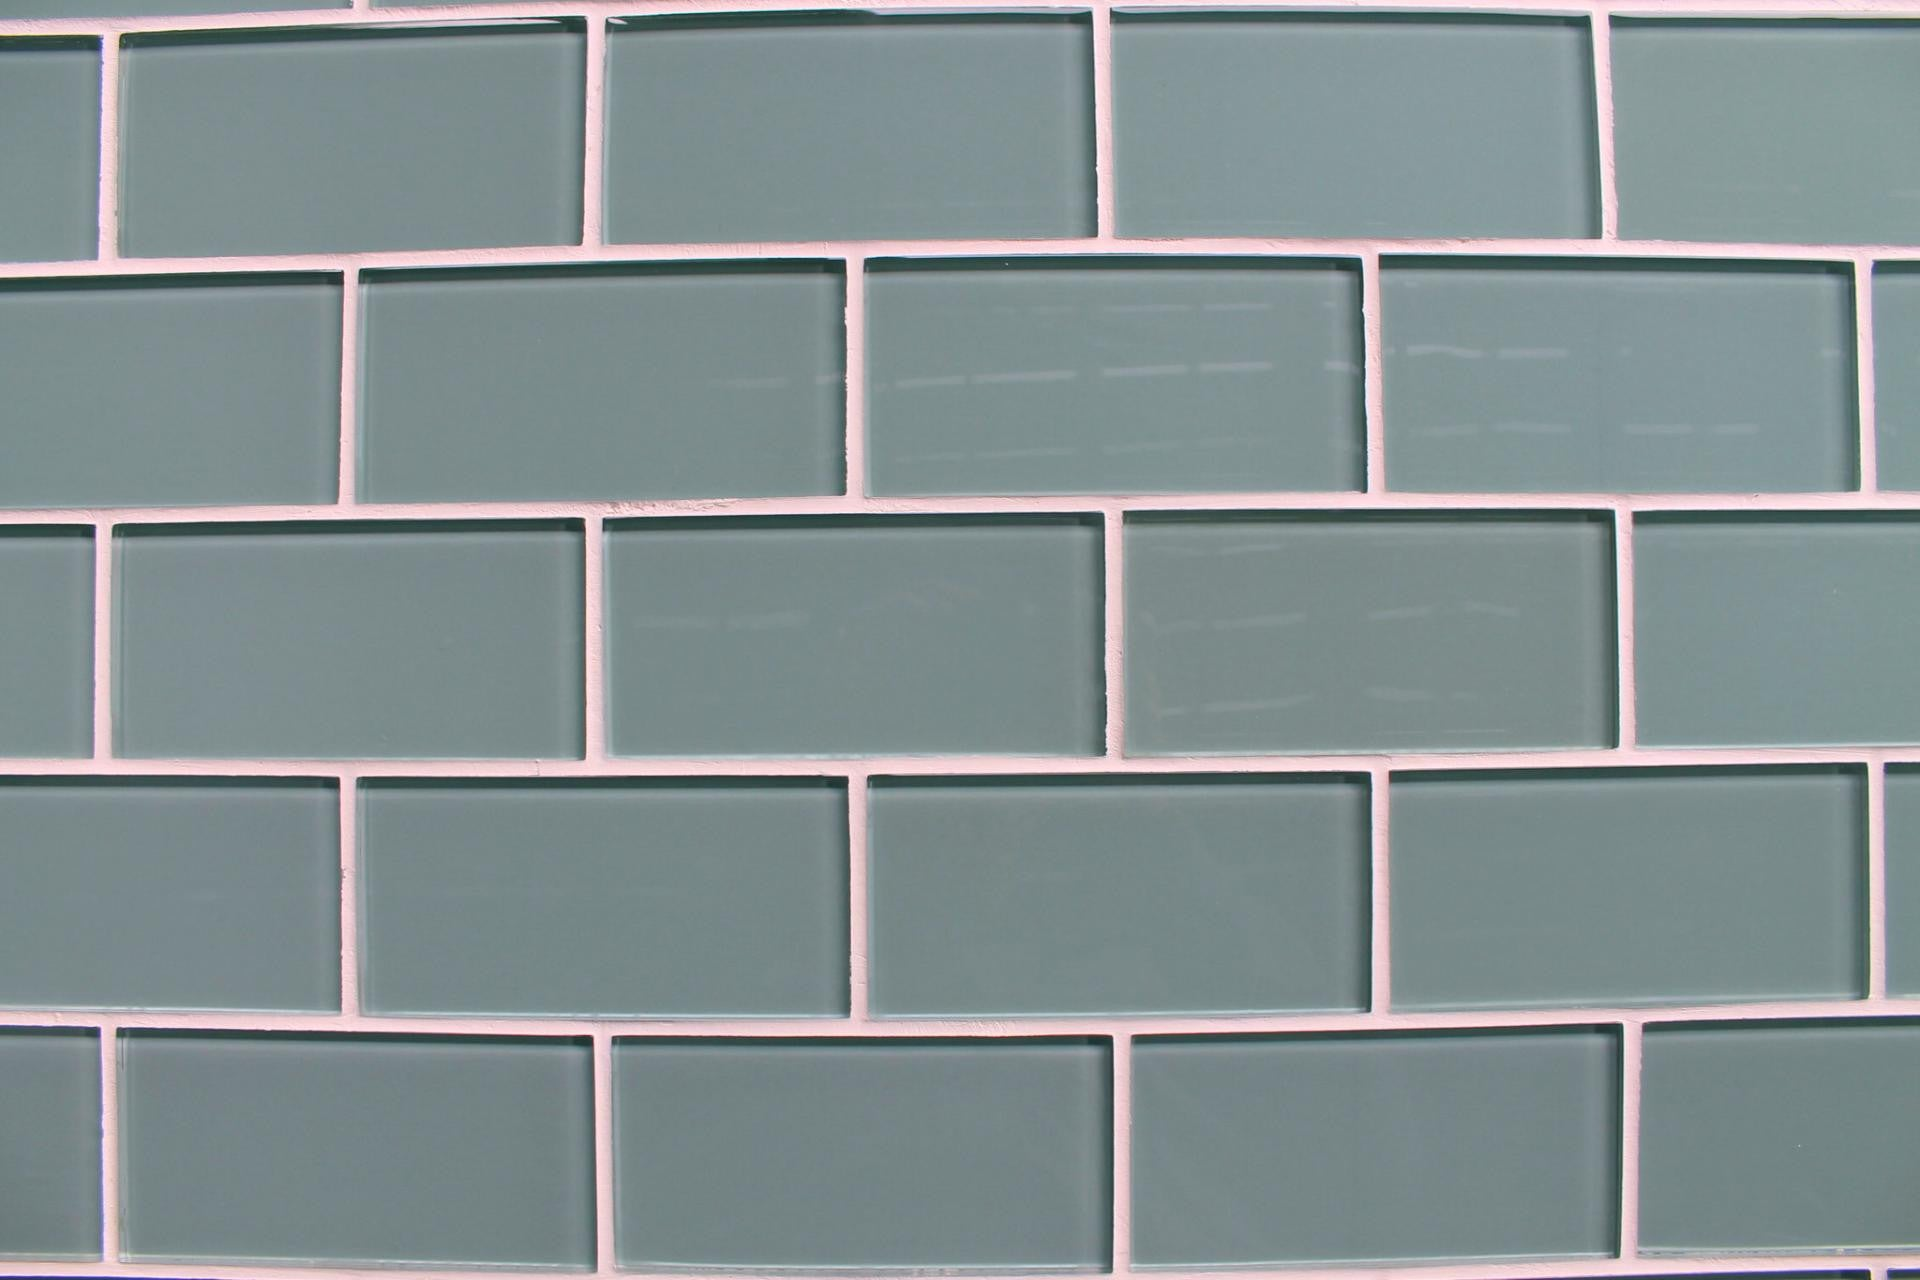 Seaside Blue 3x6 Glass Subway Tiles Rocky Point Tile